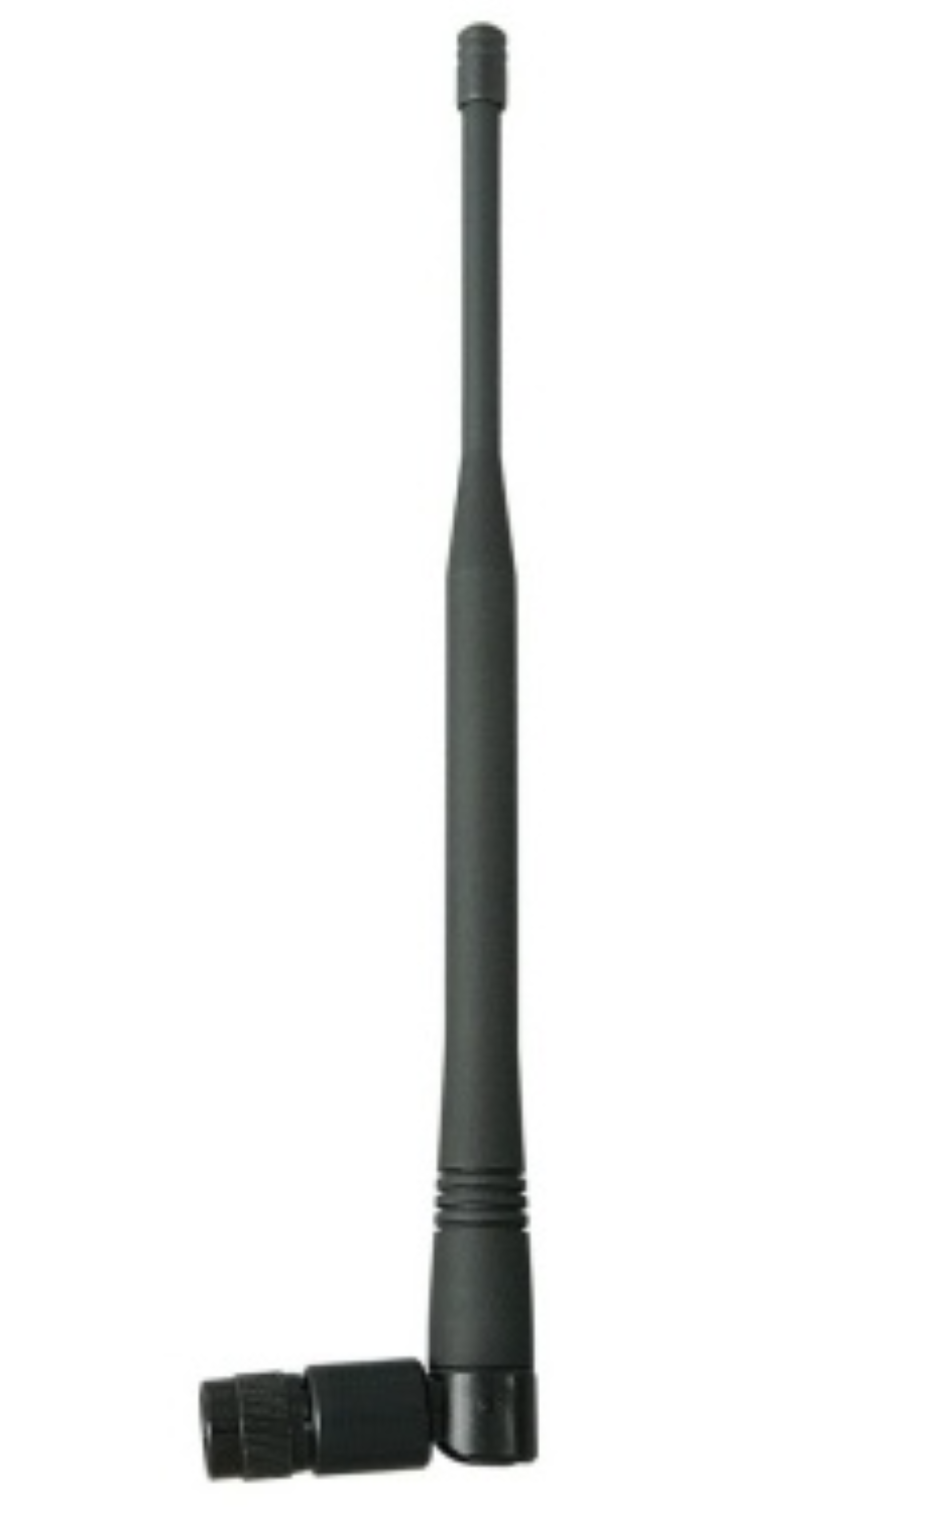 Antenna for receiver 1pc.